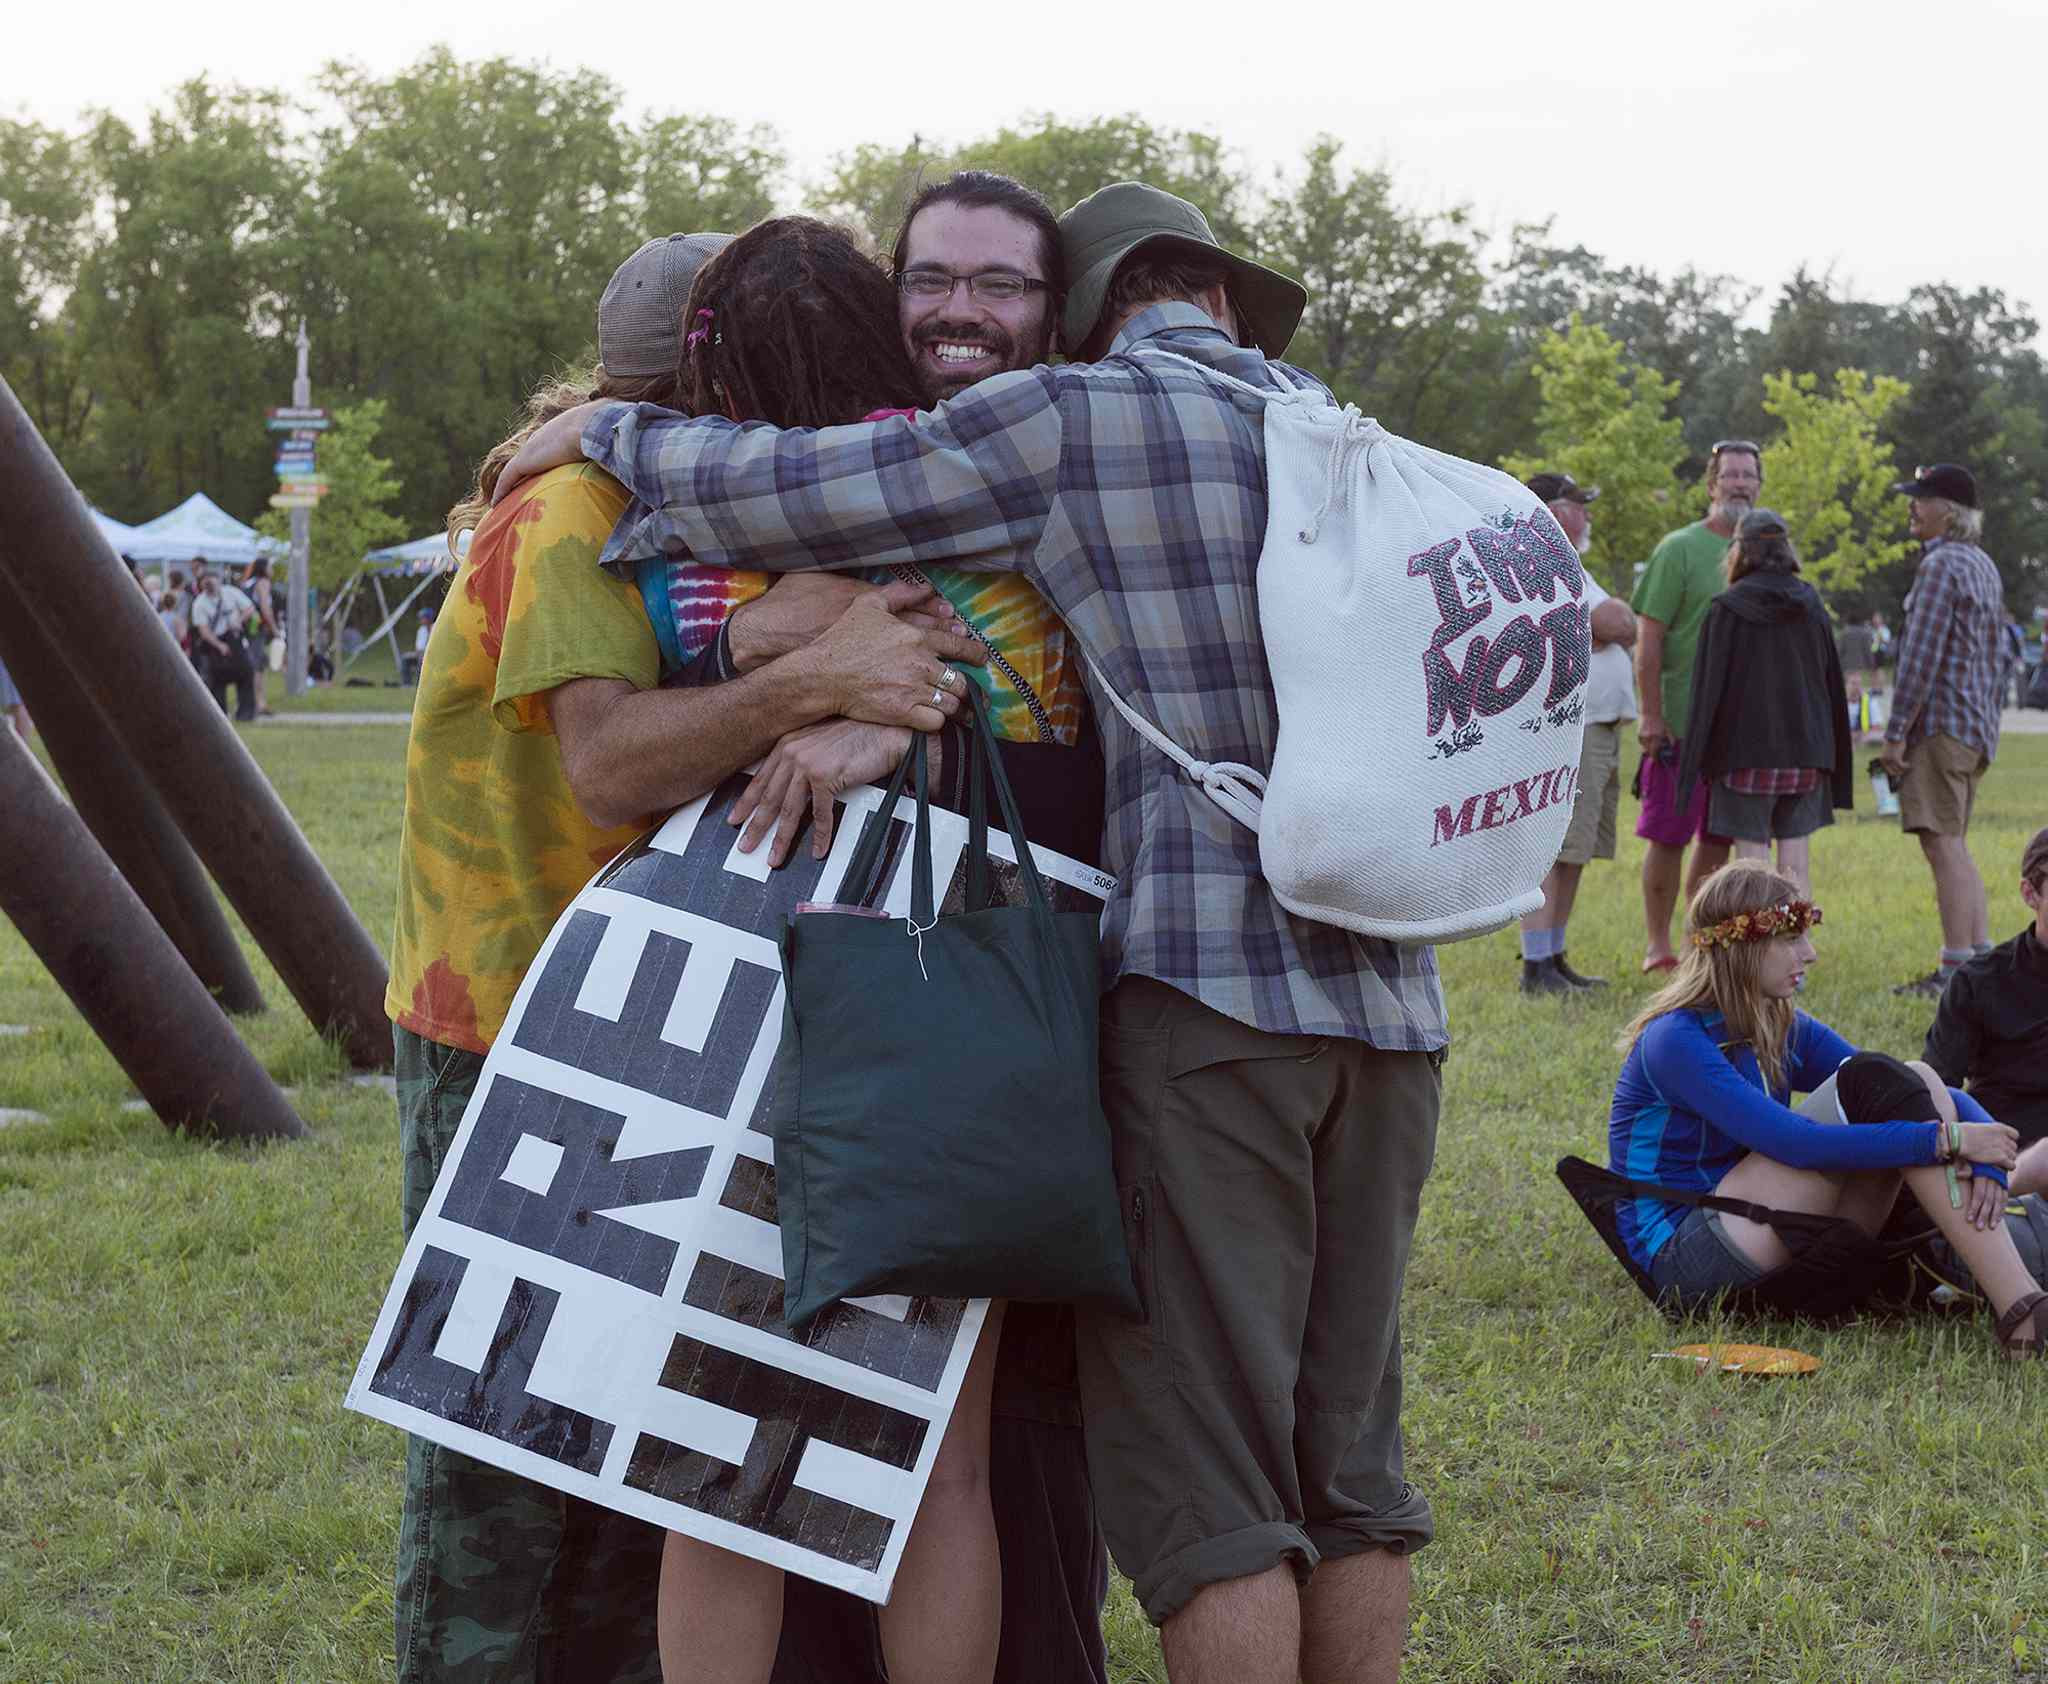 Greg Allan feels the love as he delivers free hugs at Folk Fest on Thursday.